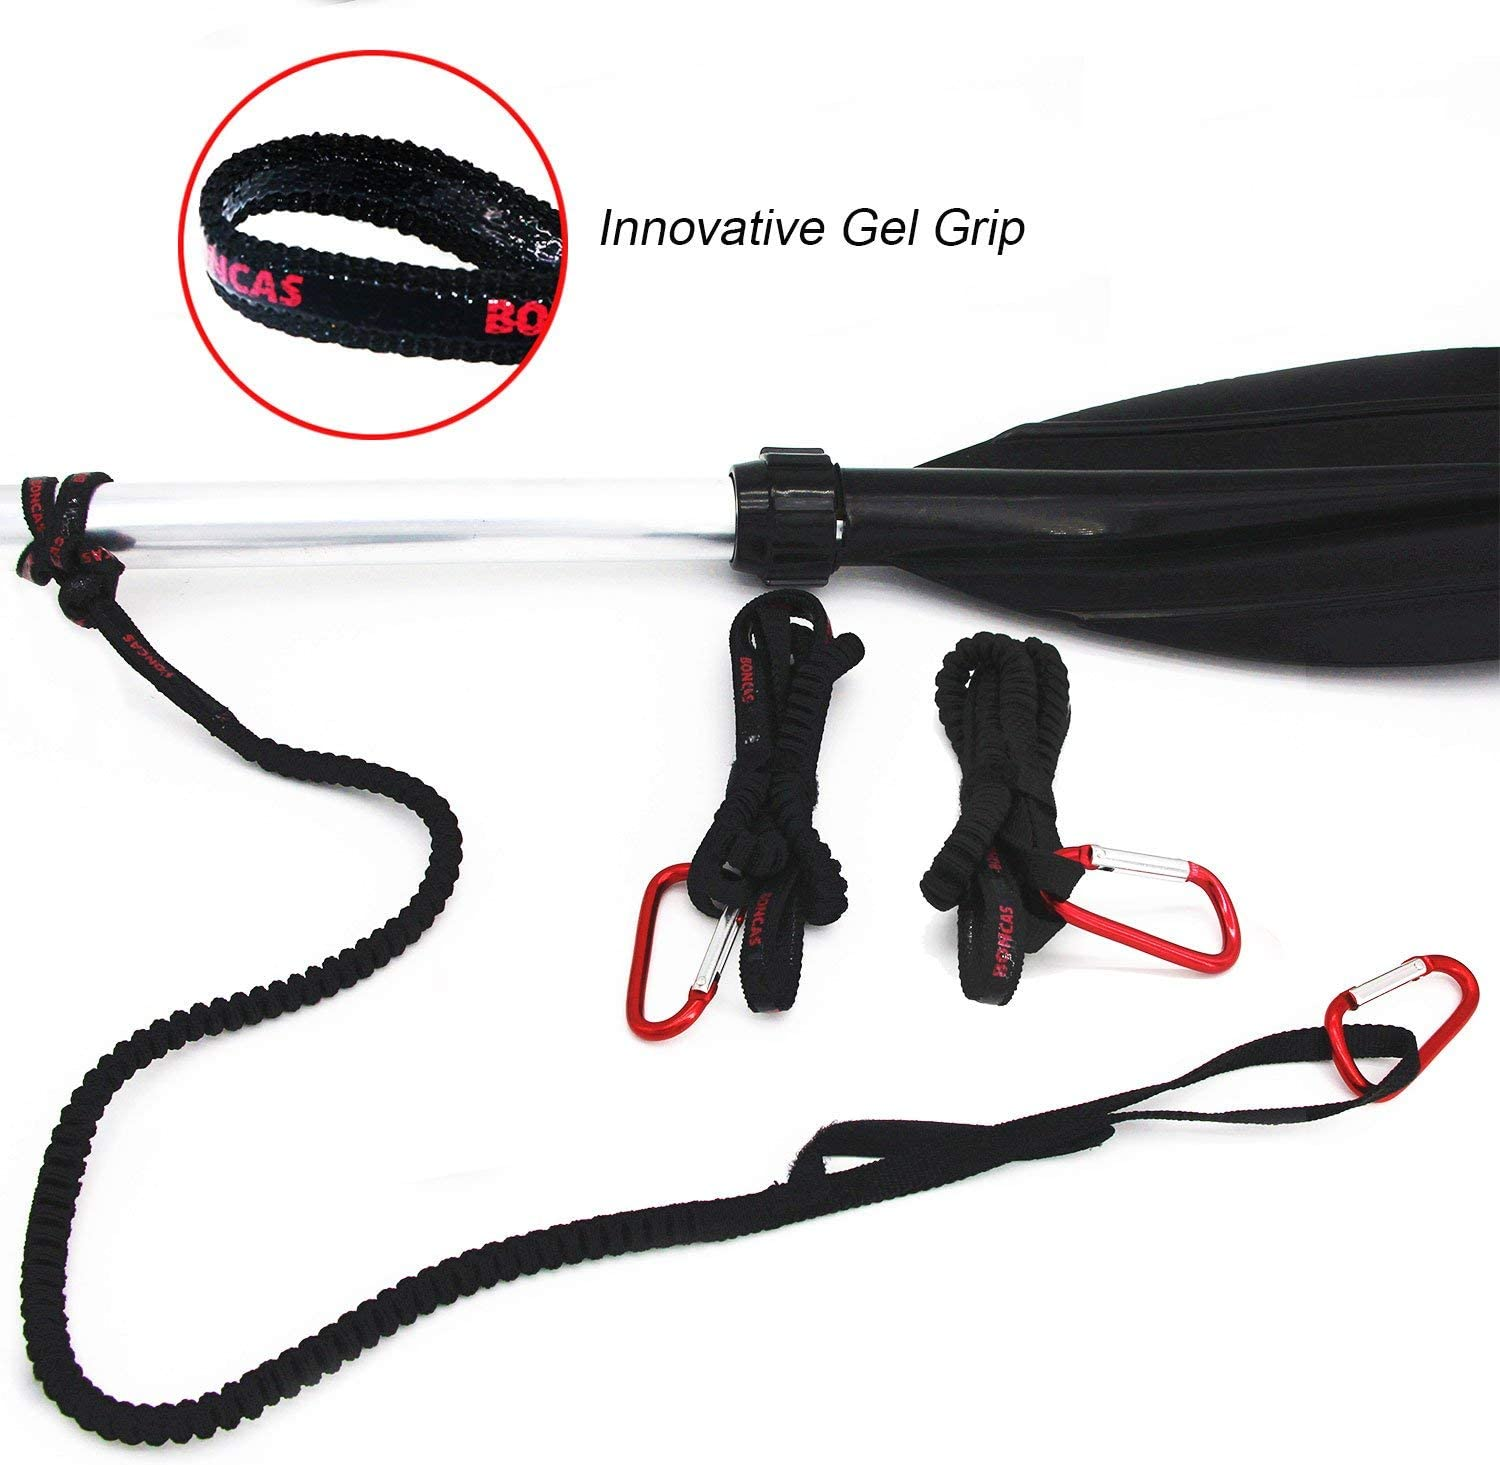 Paddle Leash Safety Rod Bungee Rod Holder Gripping Gear Leash with Innovative Gel Grip to The Paddle or Rod for Kayaking, Canoeing